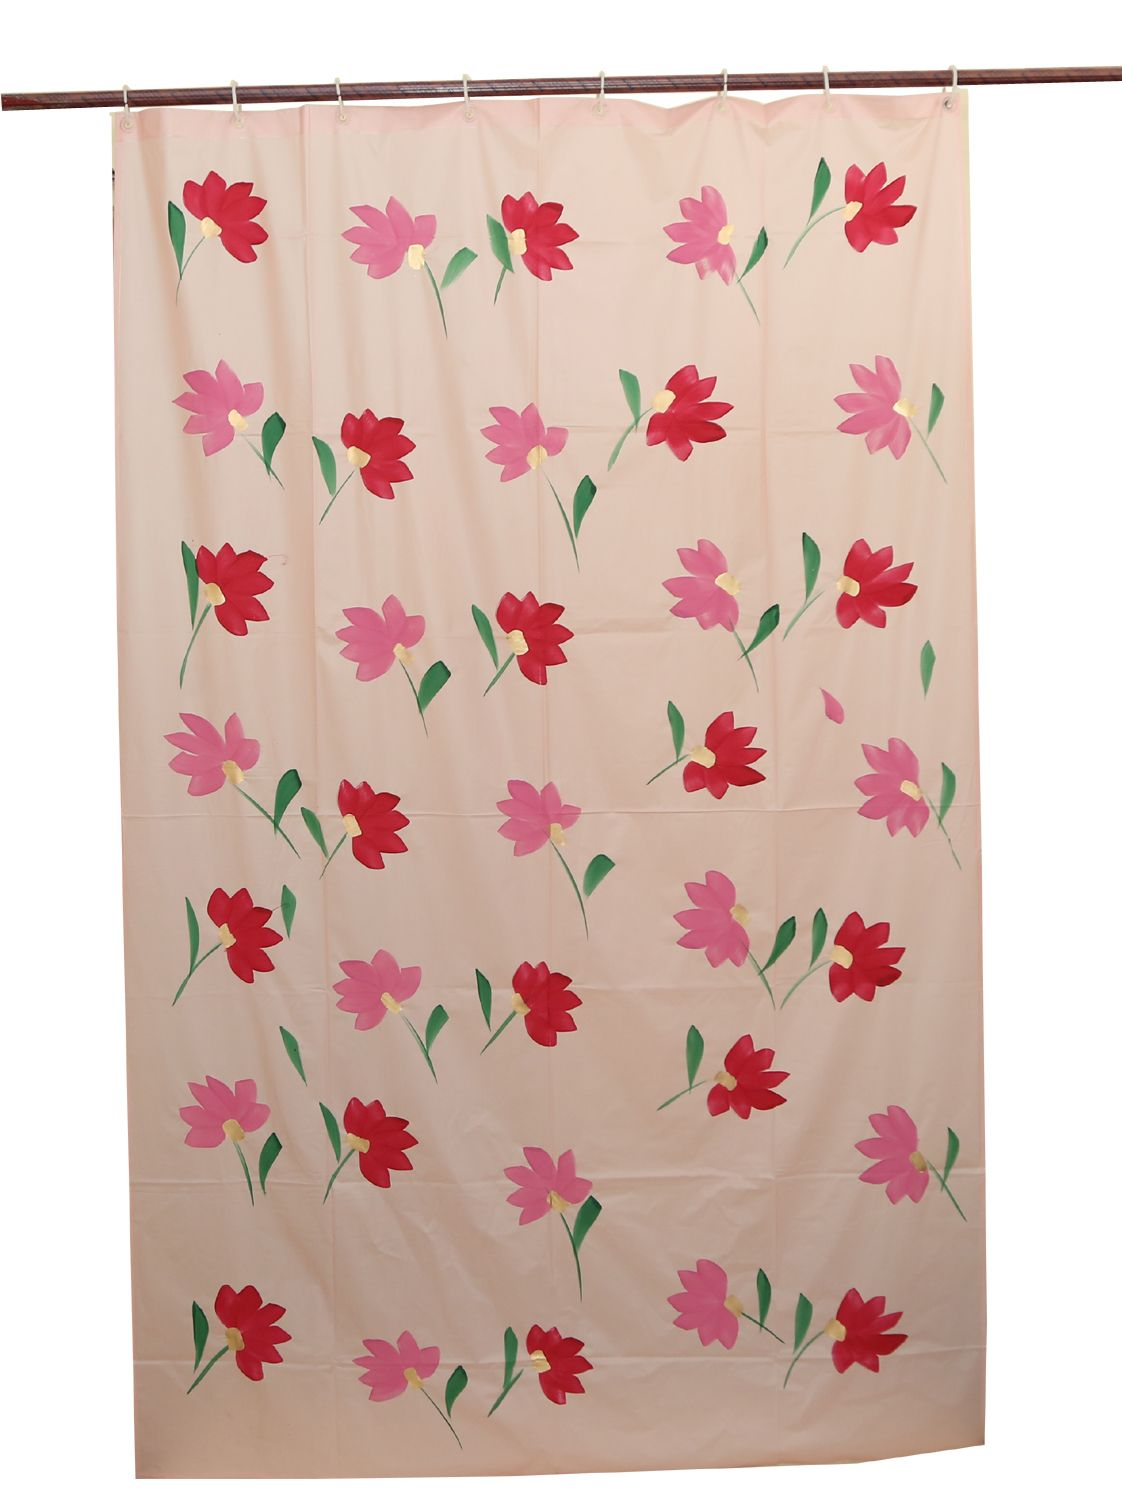 Kuber Industries™ Pink Floral Design PVC Premium Shower Curtain - 7 Feet - Pack of 2 Pcs 84*54 Inches- 8 Hooks (SHWC08)